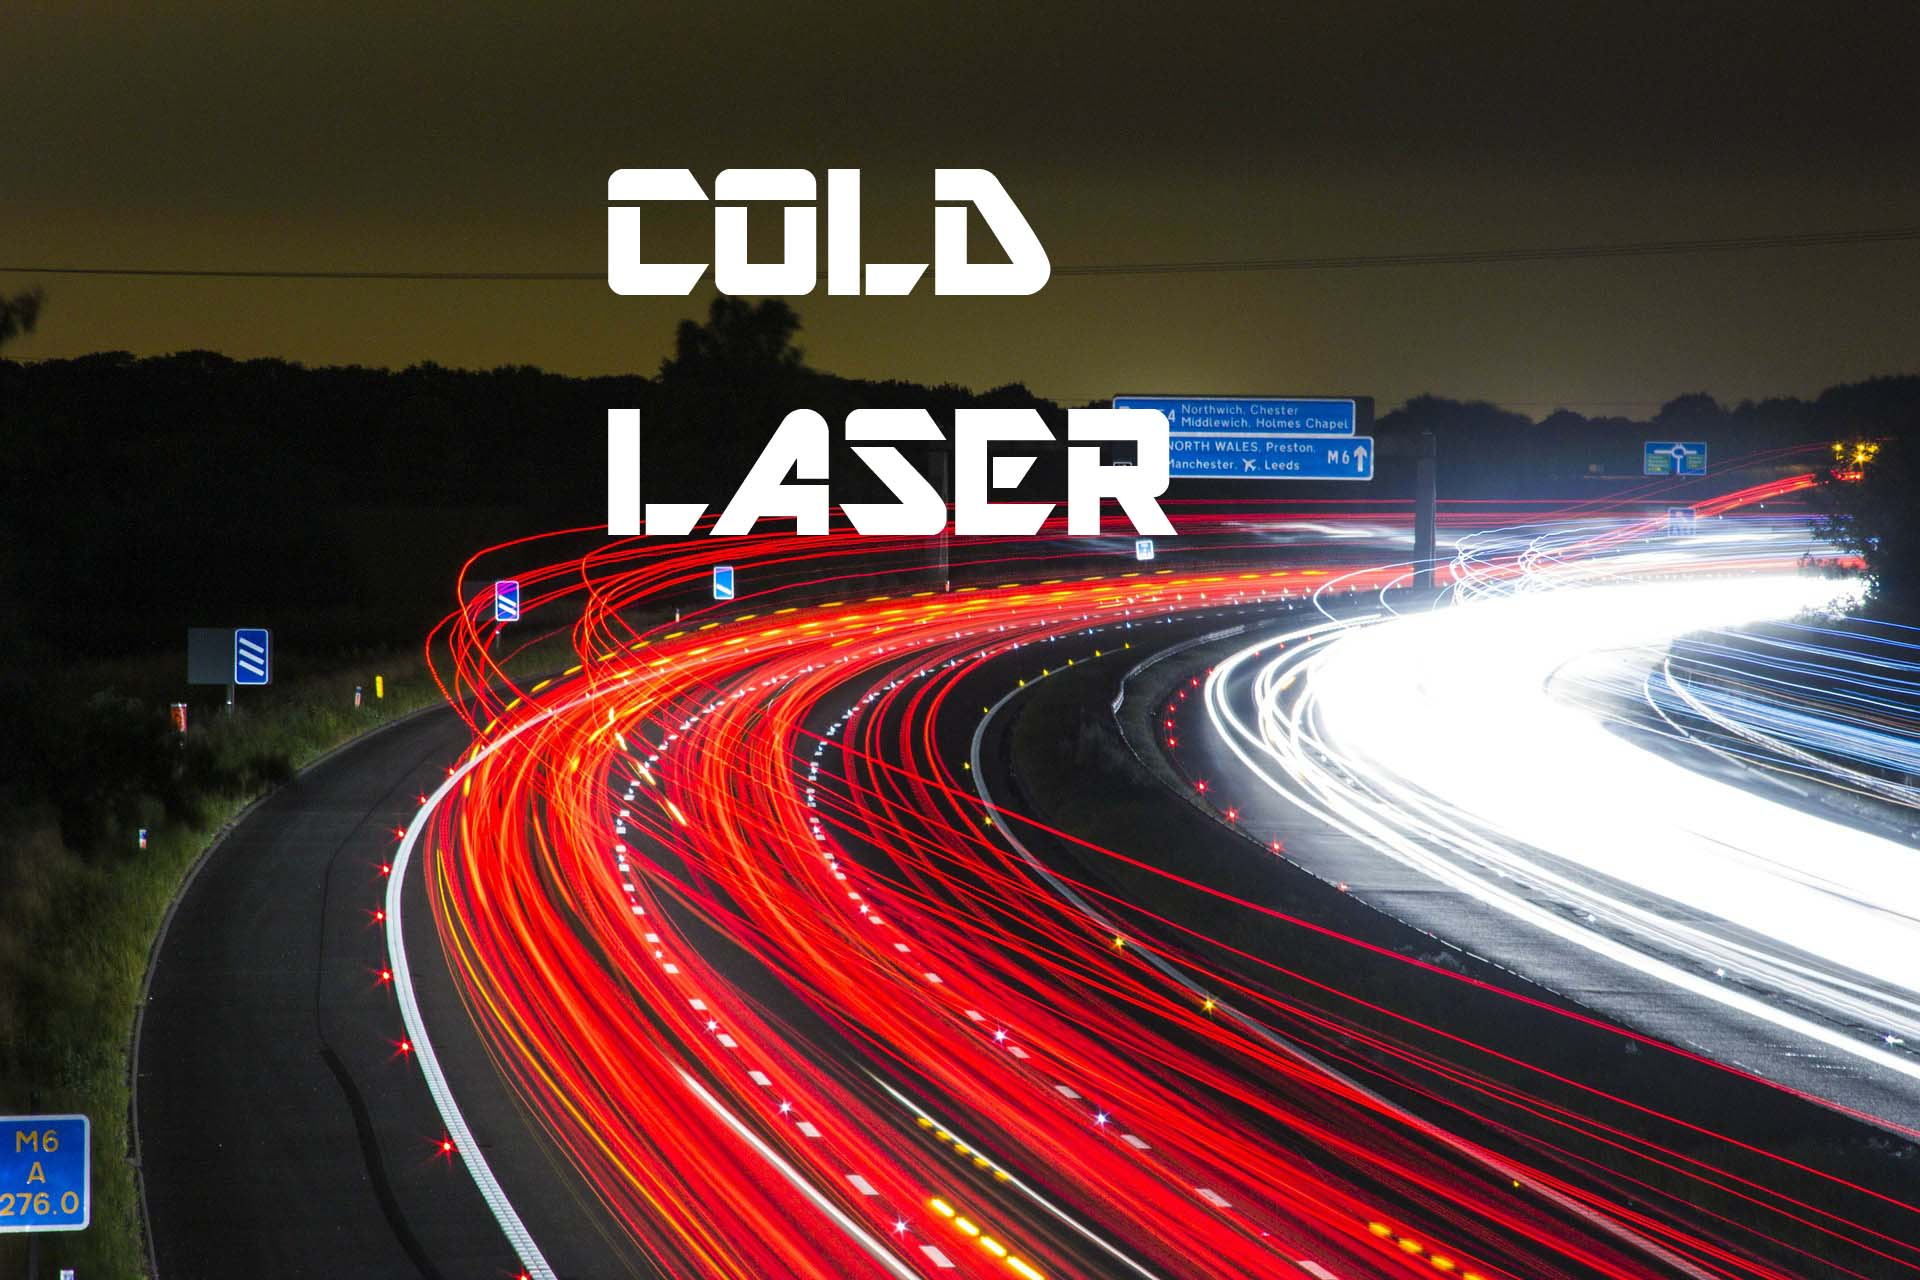 Cold laser treatment therapy, chiropractic